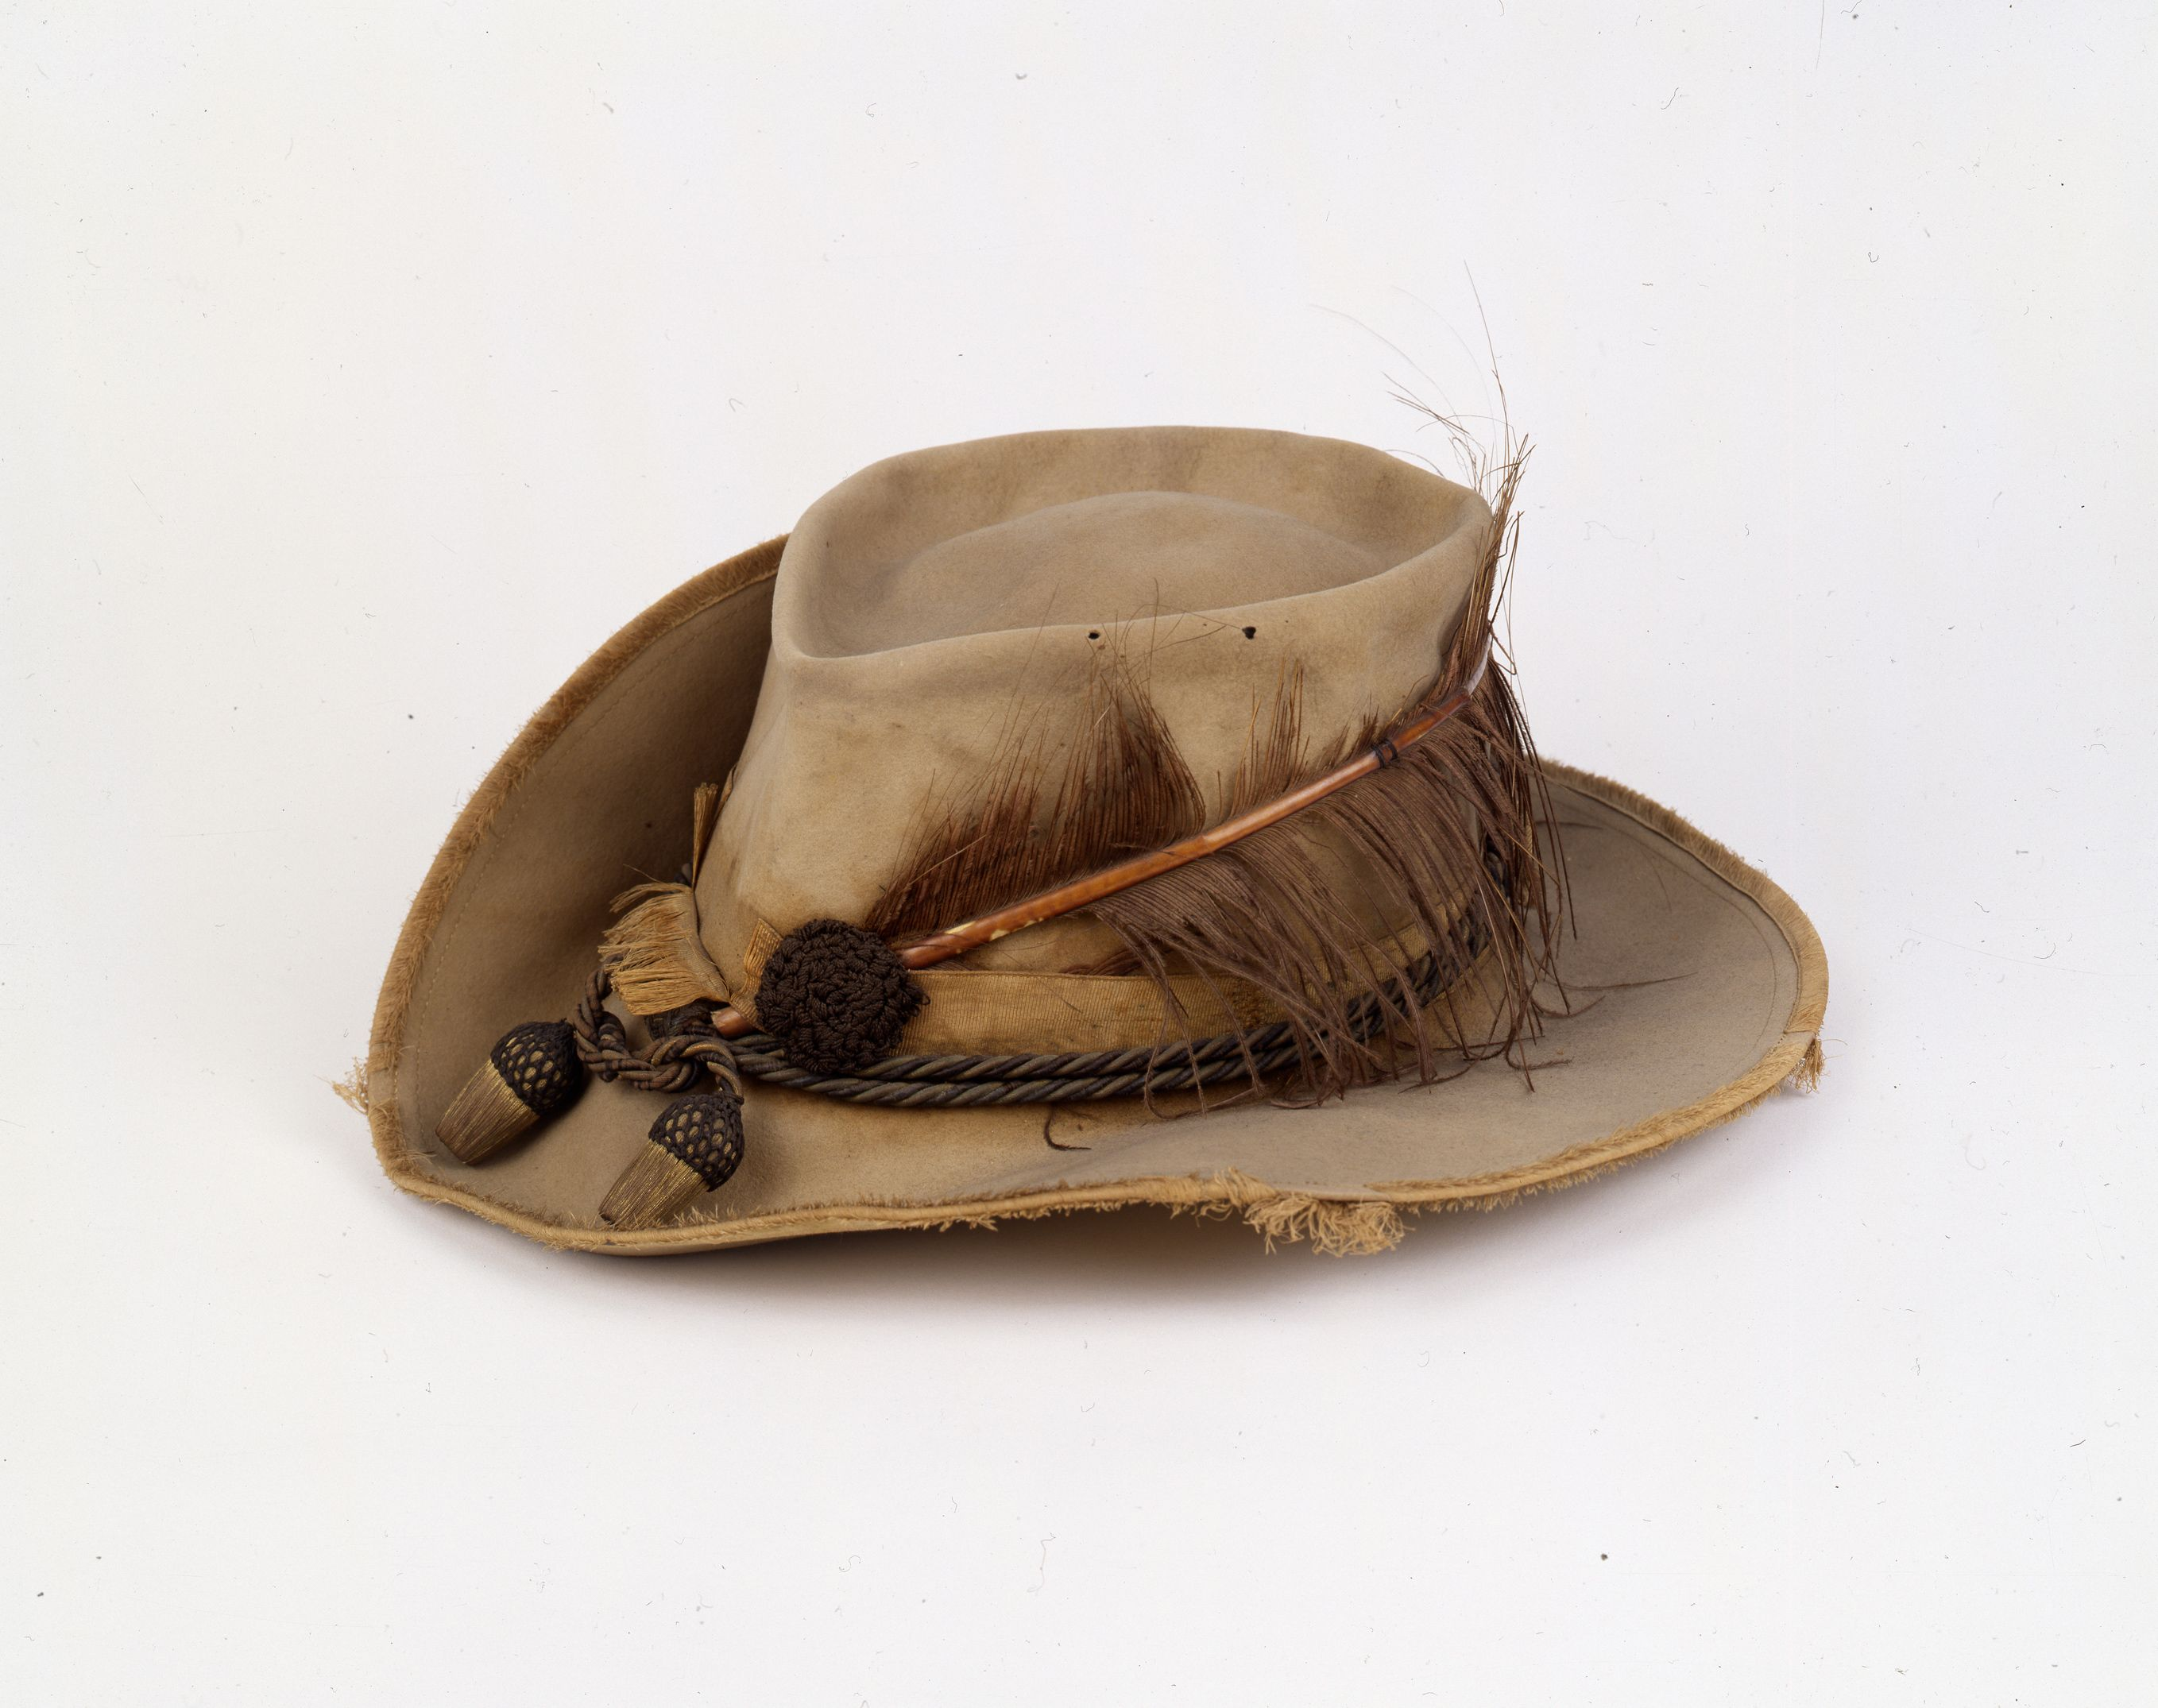 Plumed hat worn by General J E B  Stuart  The hat was made